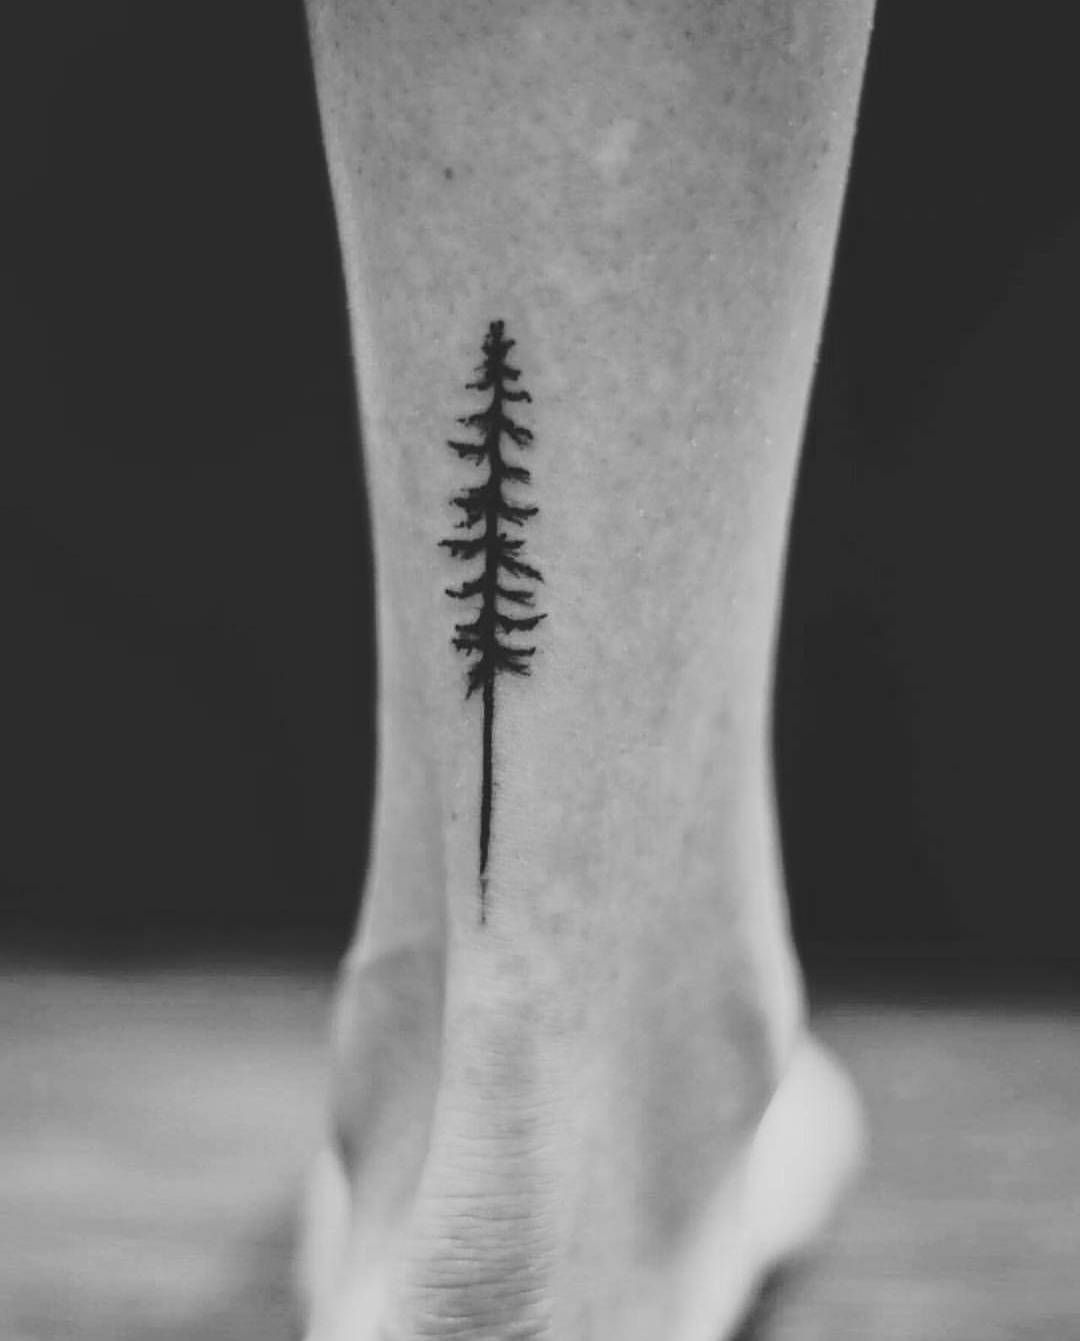 Pine tree ankle tattoo! @stellatxttoo Stella Luo Tattoos | Tattoos ...